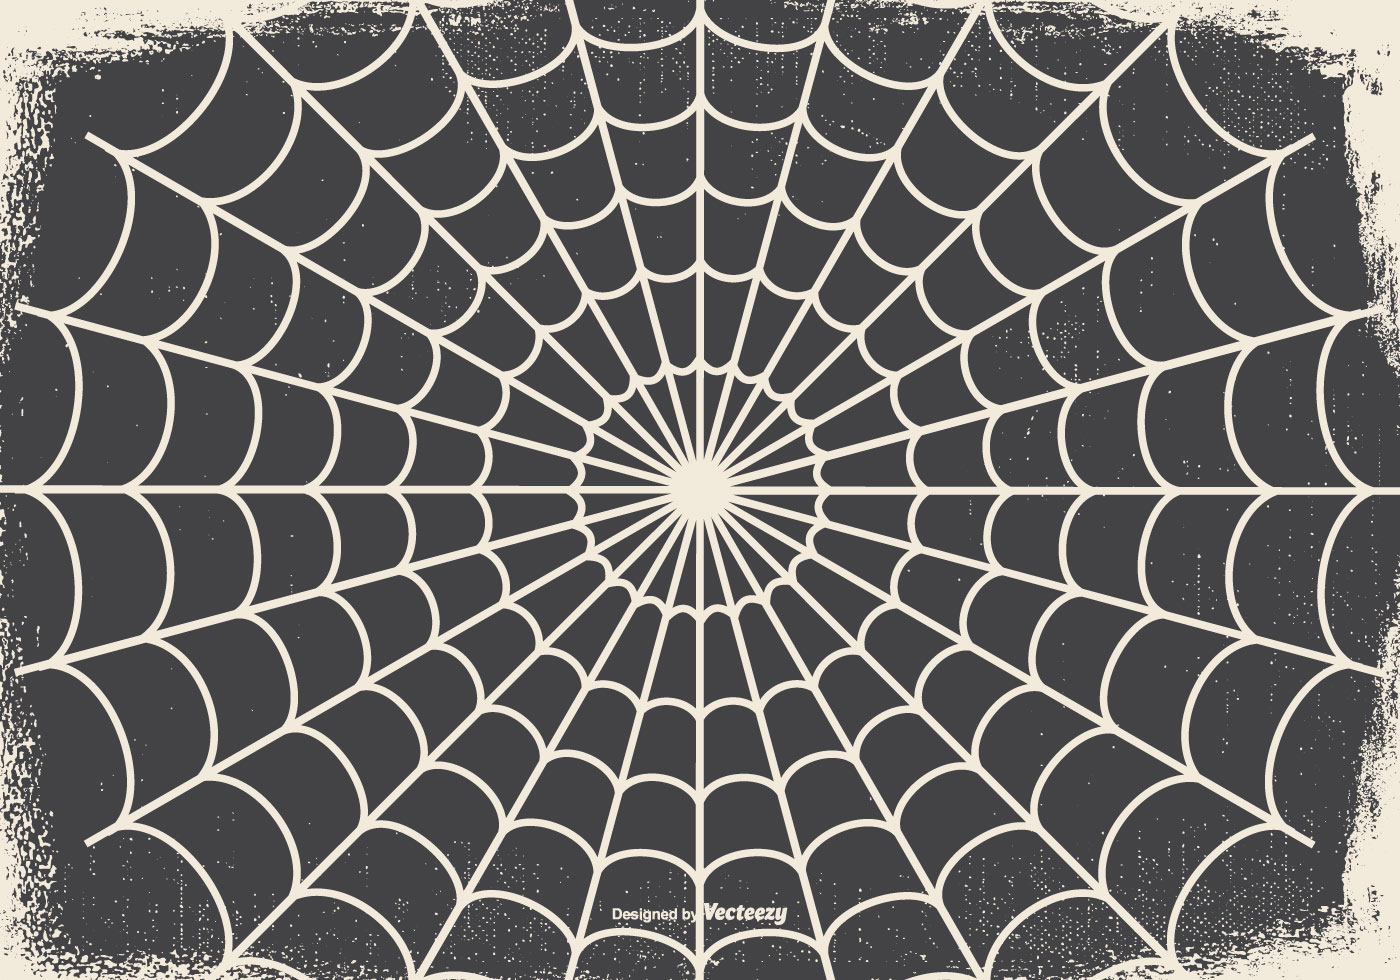 Old Spooky Halloween Spider Web Background - Download Free ...